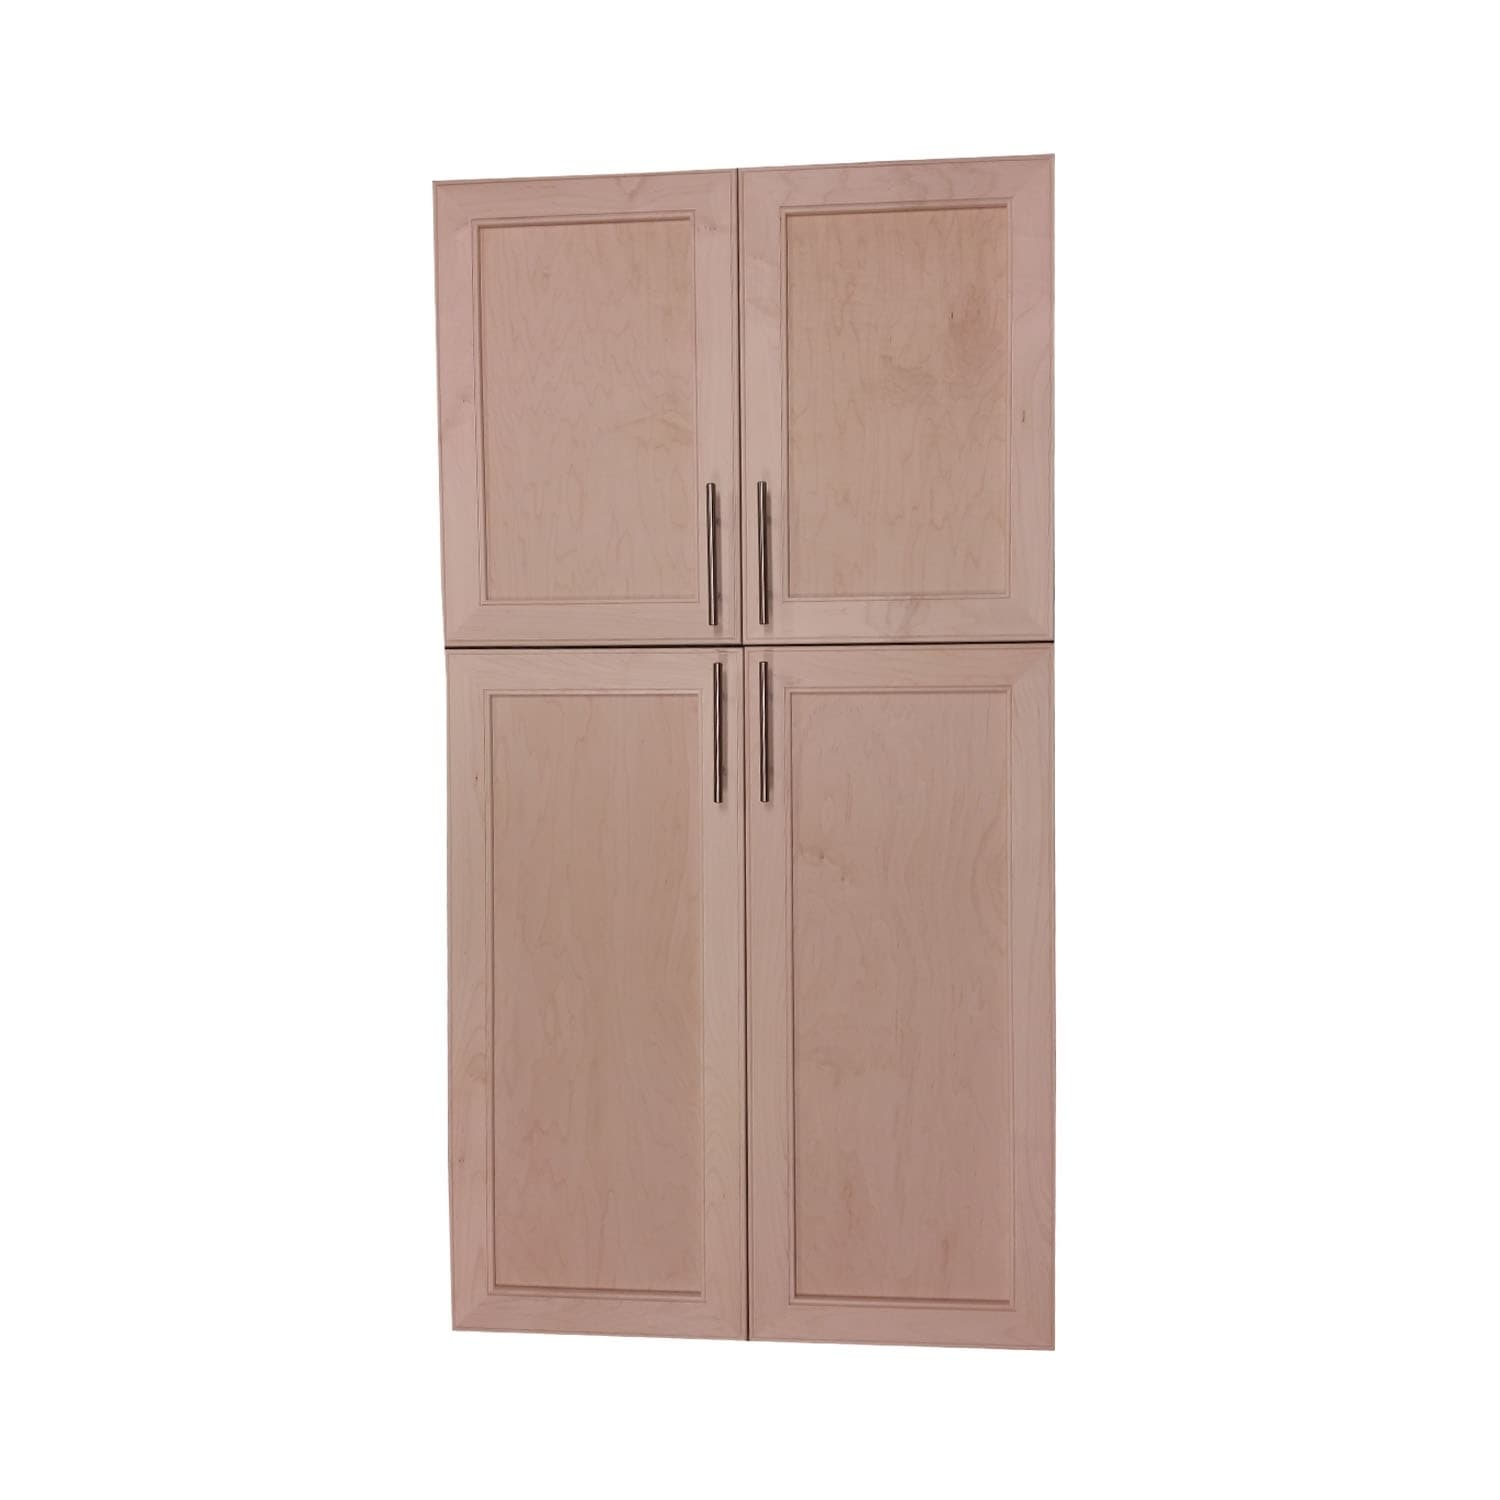 Village BP On the Wall Four Door Frameless Pantry Cabinet (7.25)